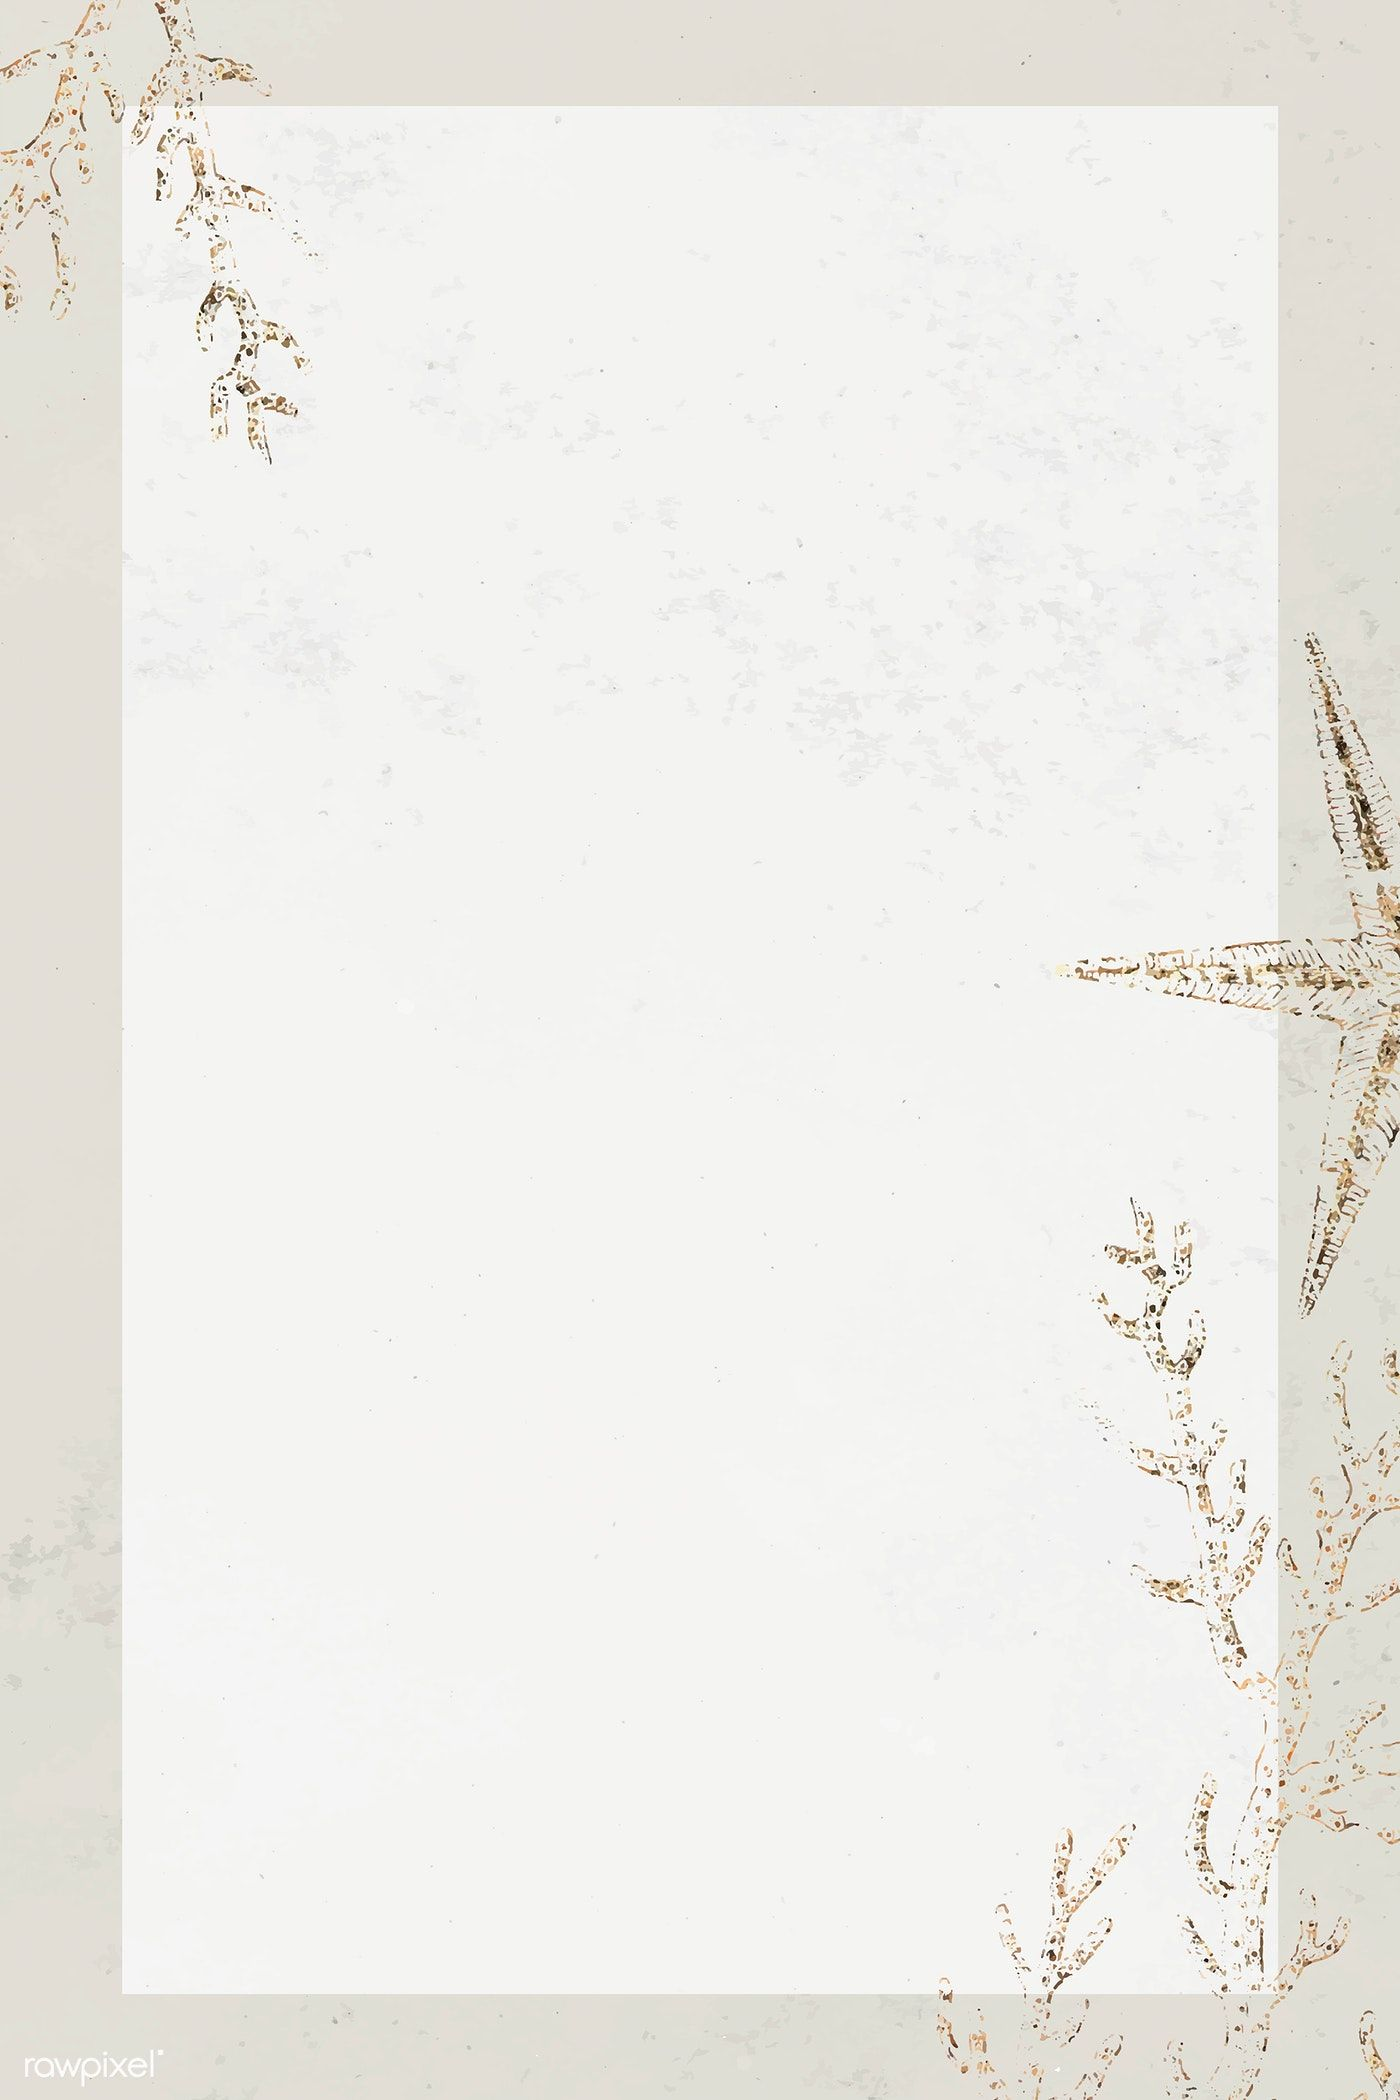 Download Premium Psd Of Gold Frame With Foliage Pattern On Marble Textured Gold Frame Marble Texture Flower Background Wallpaper